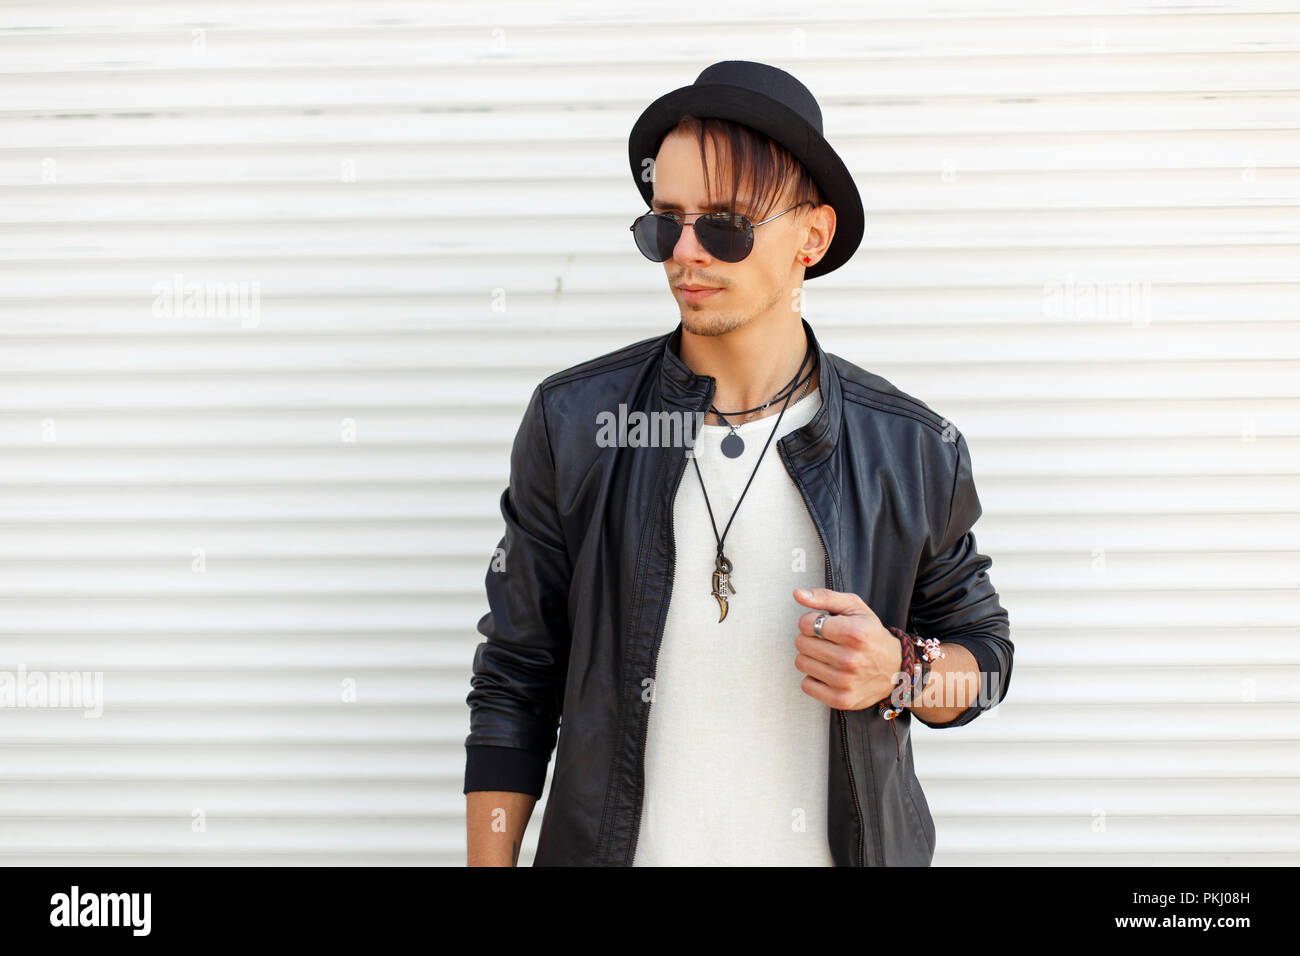 Stylish Clothes Fashionable Handsome Man In Stylish Clothes With Sunglasses And A